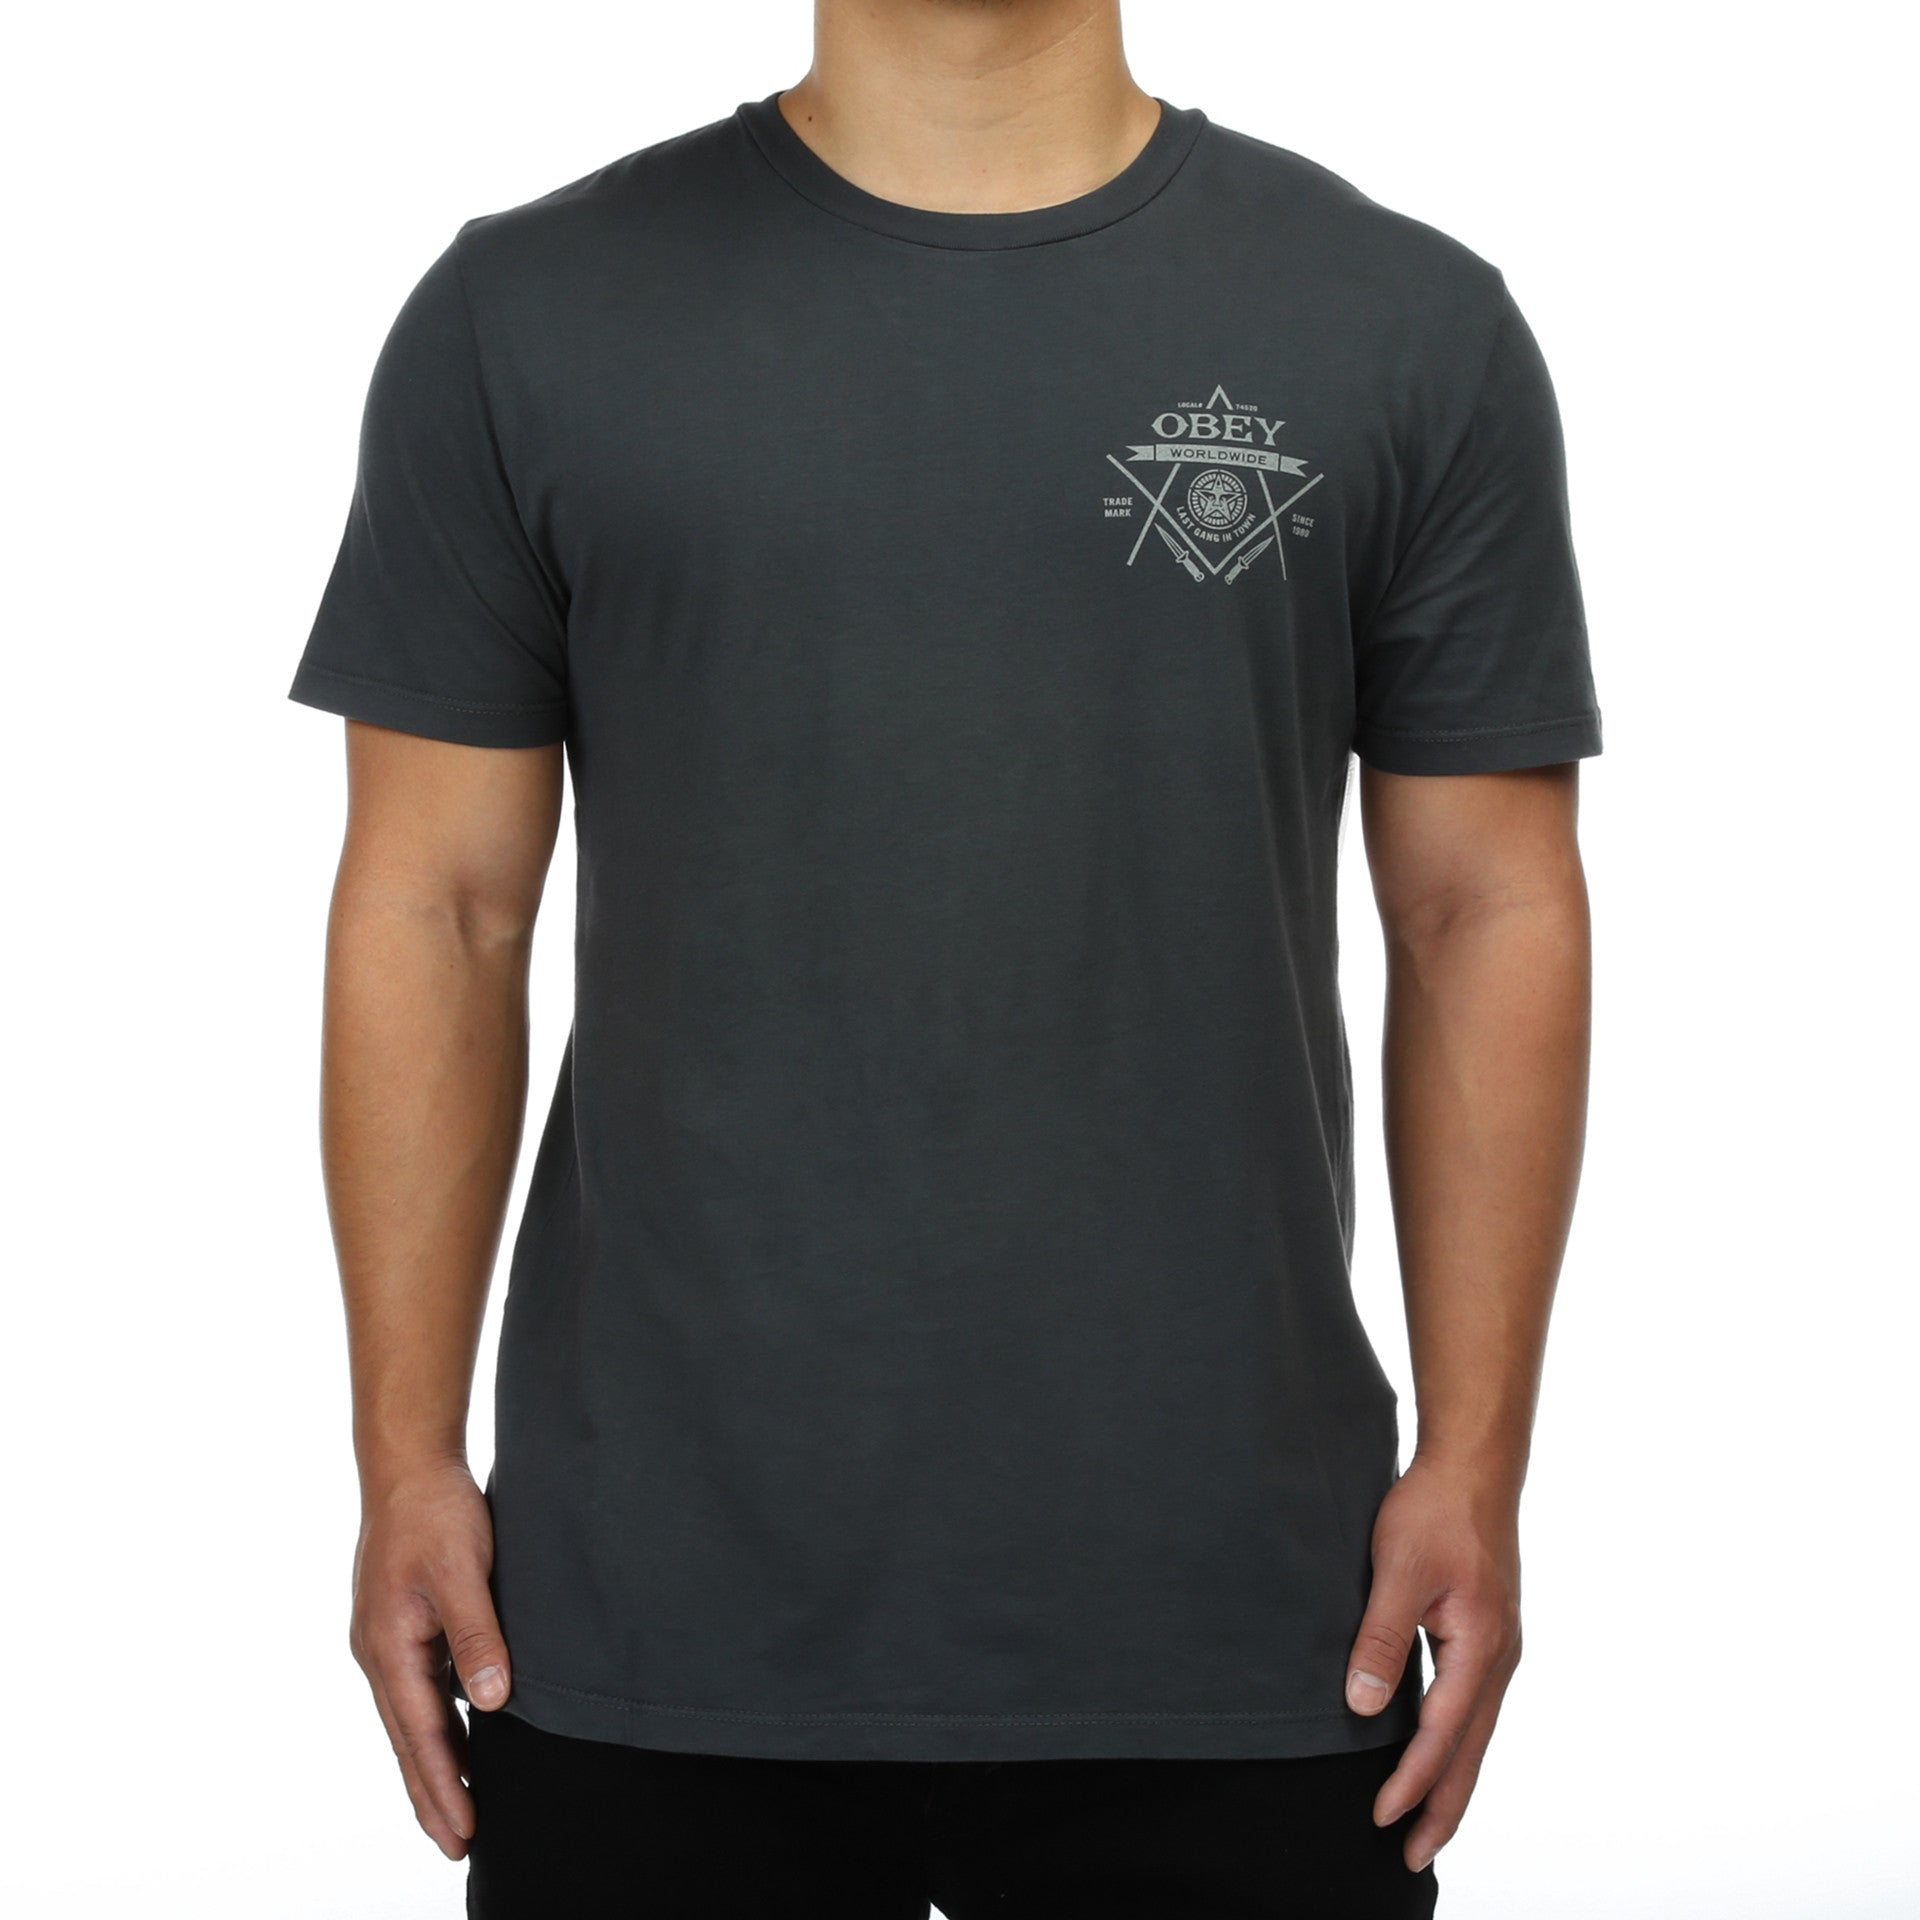 Obey Normal Tee L/S Pirate Black/S y5mtMXAc